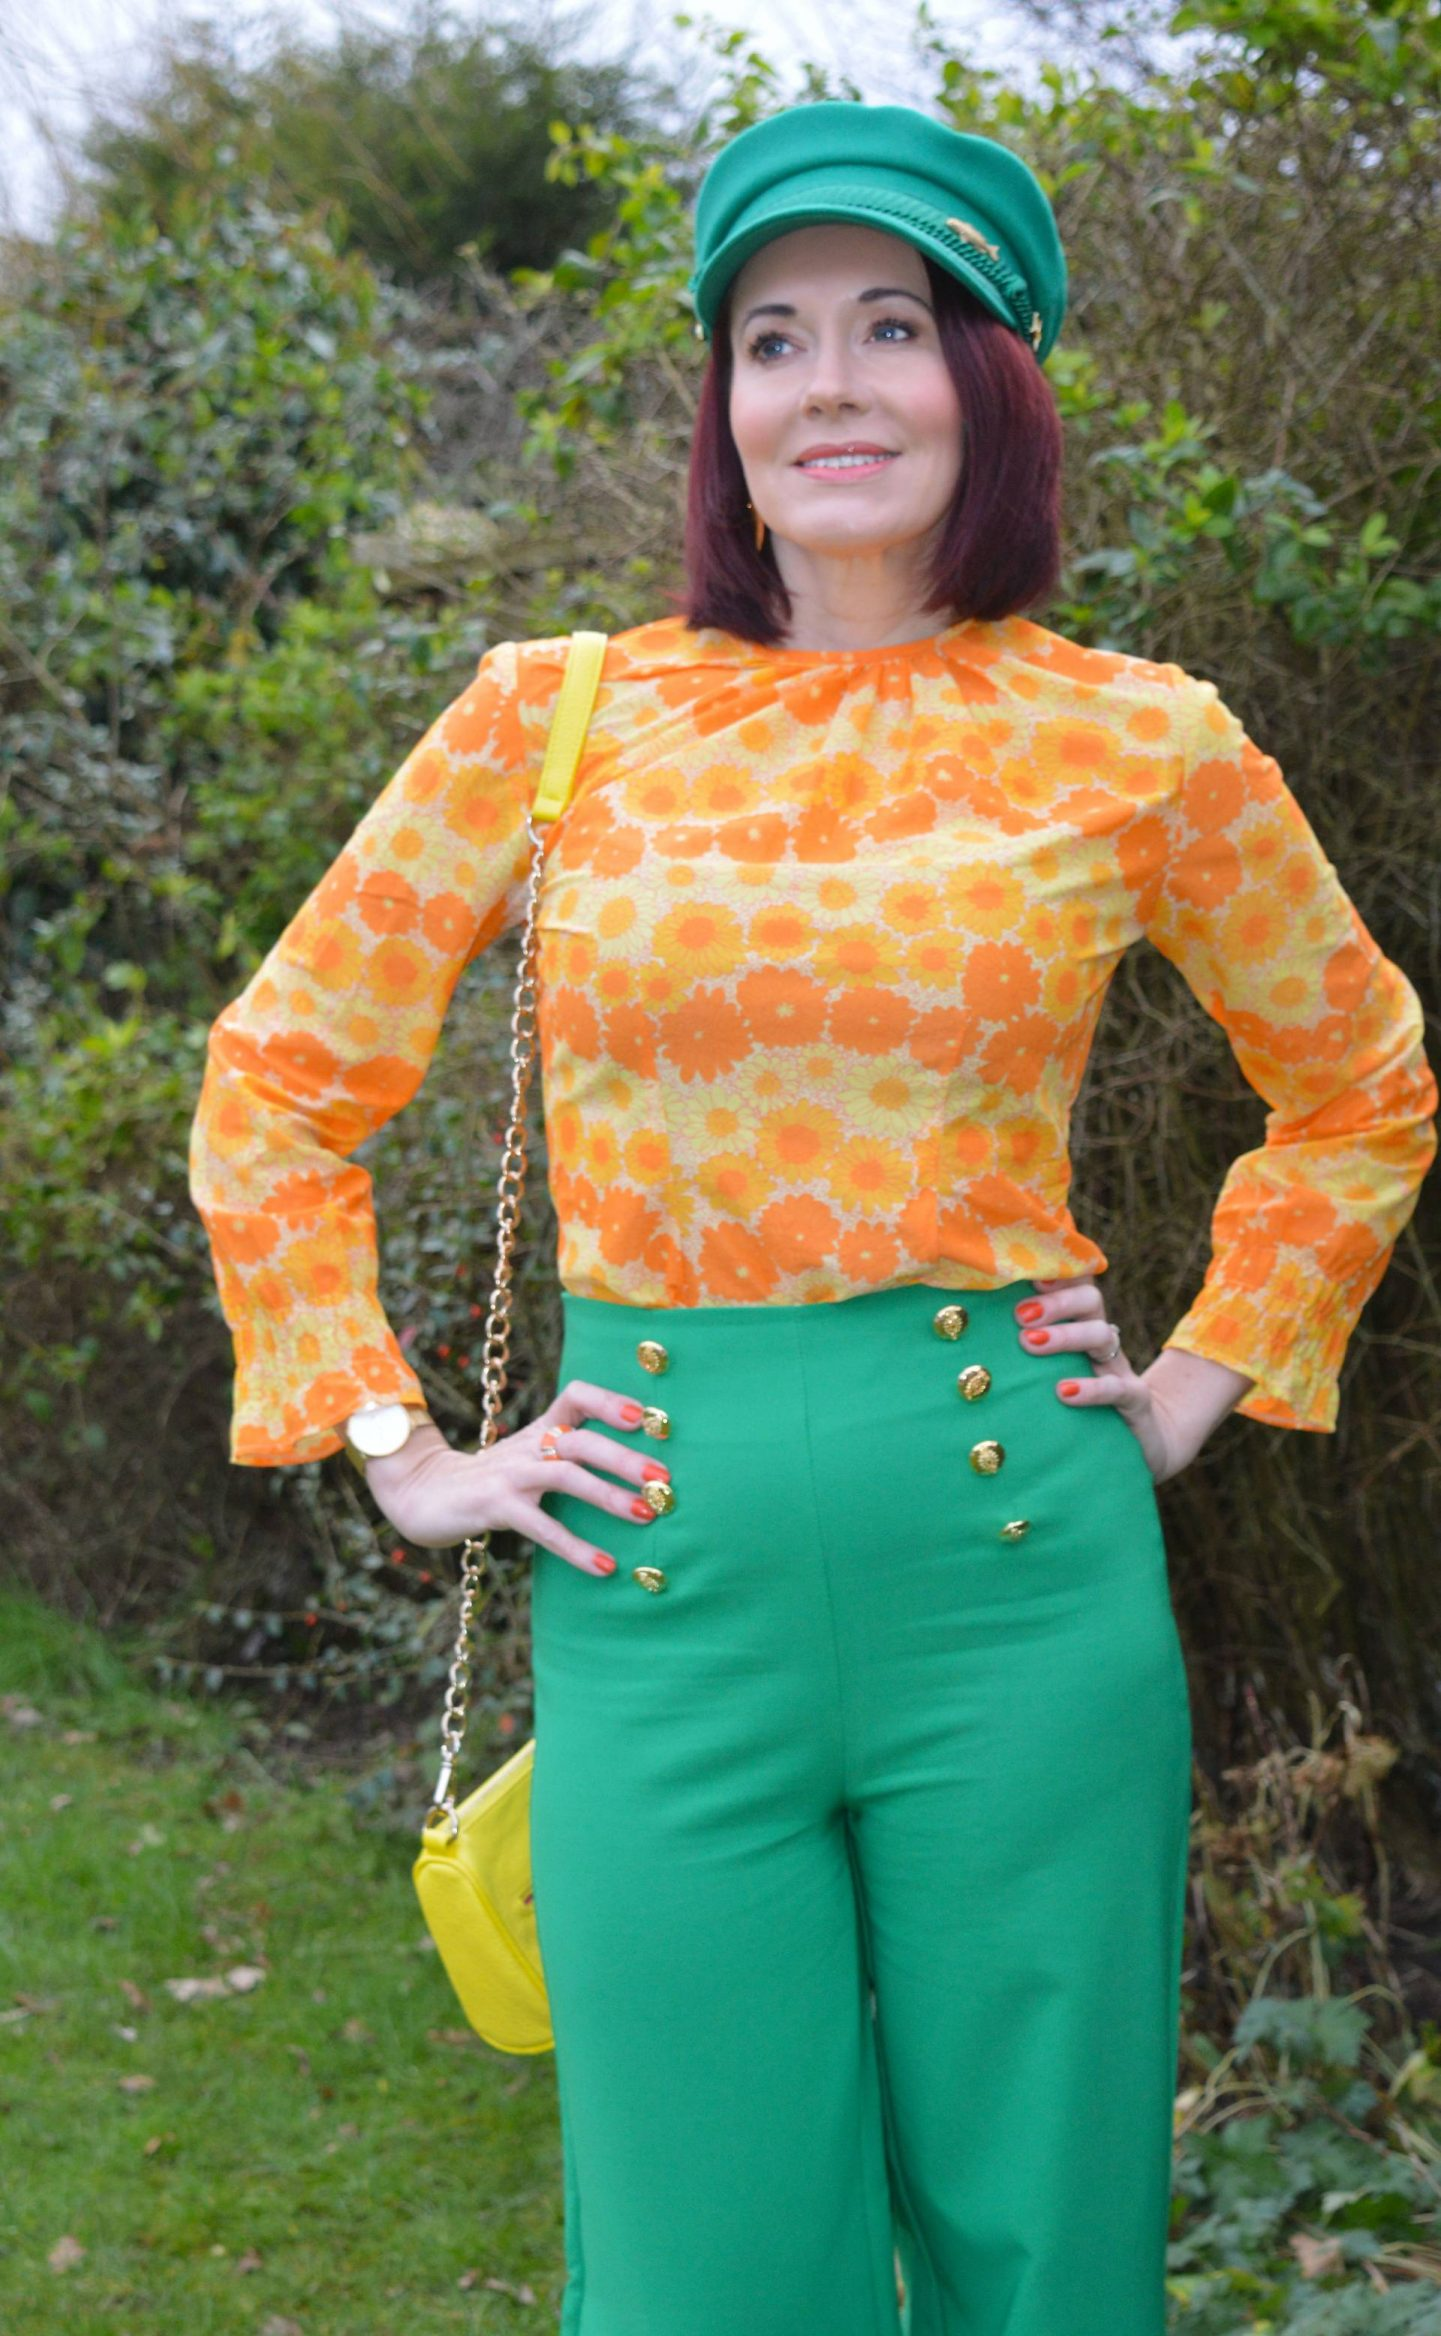 Vintage Orange Floral Print Top and Green Trousers, Flounce London wide leg button detail tailored trousers in green, green Fabienne Chapot cap